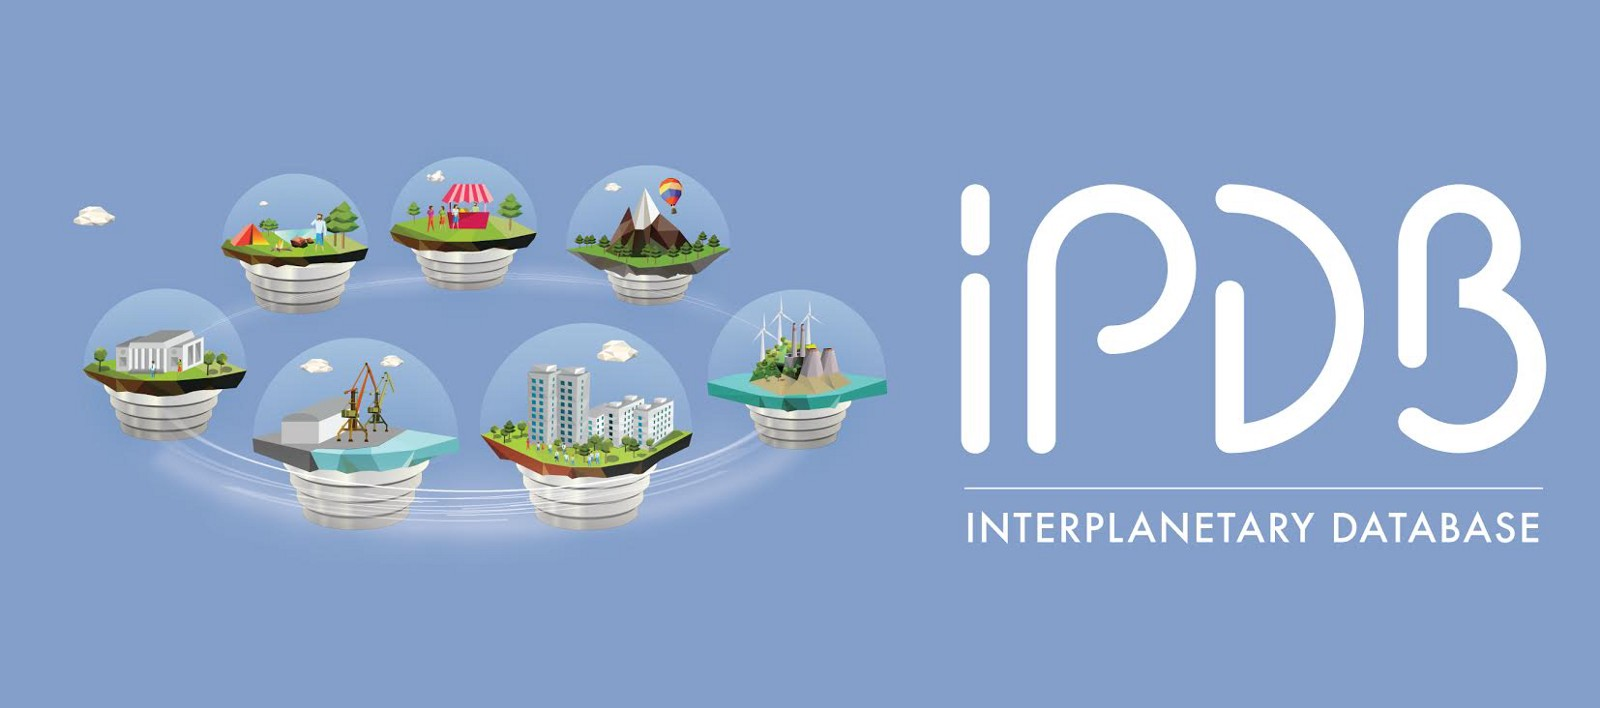 And ipfs announced today